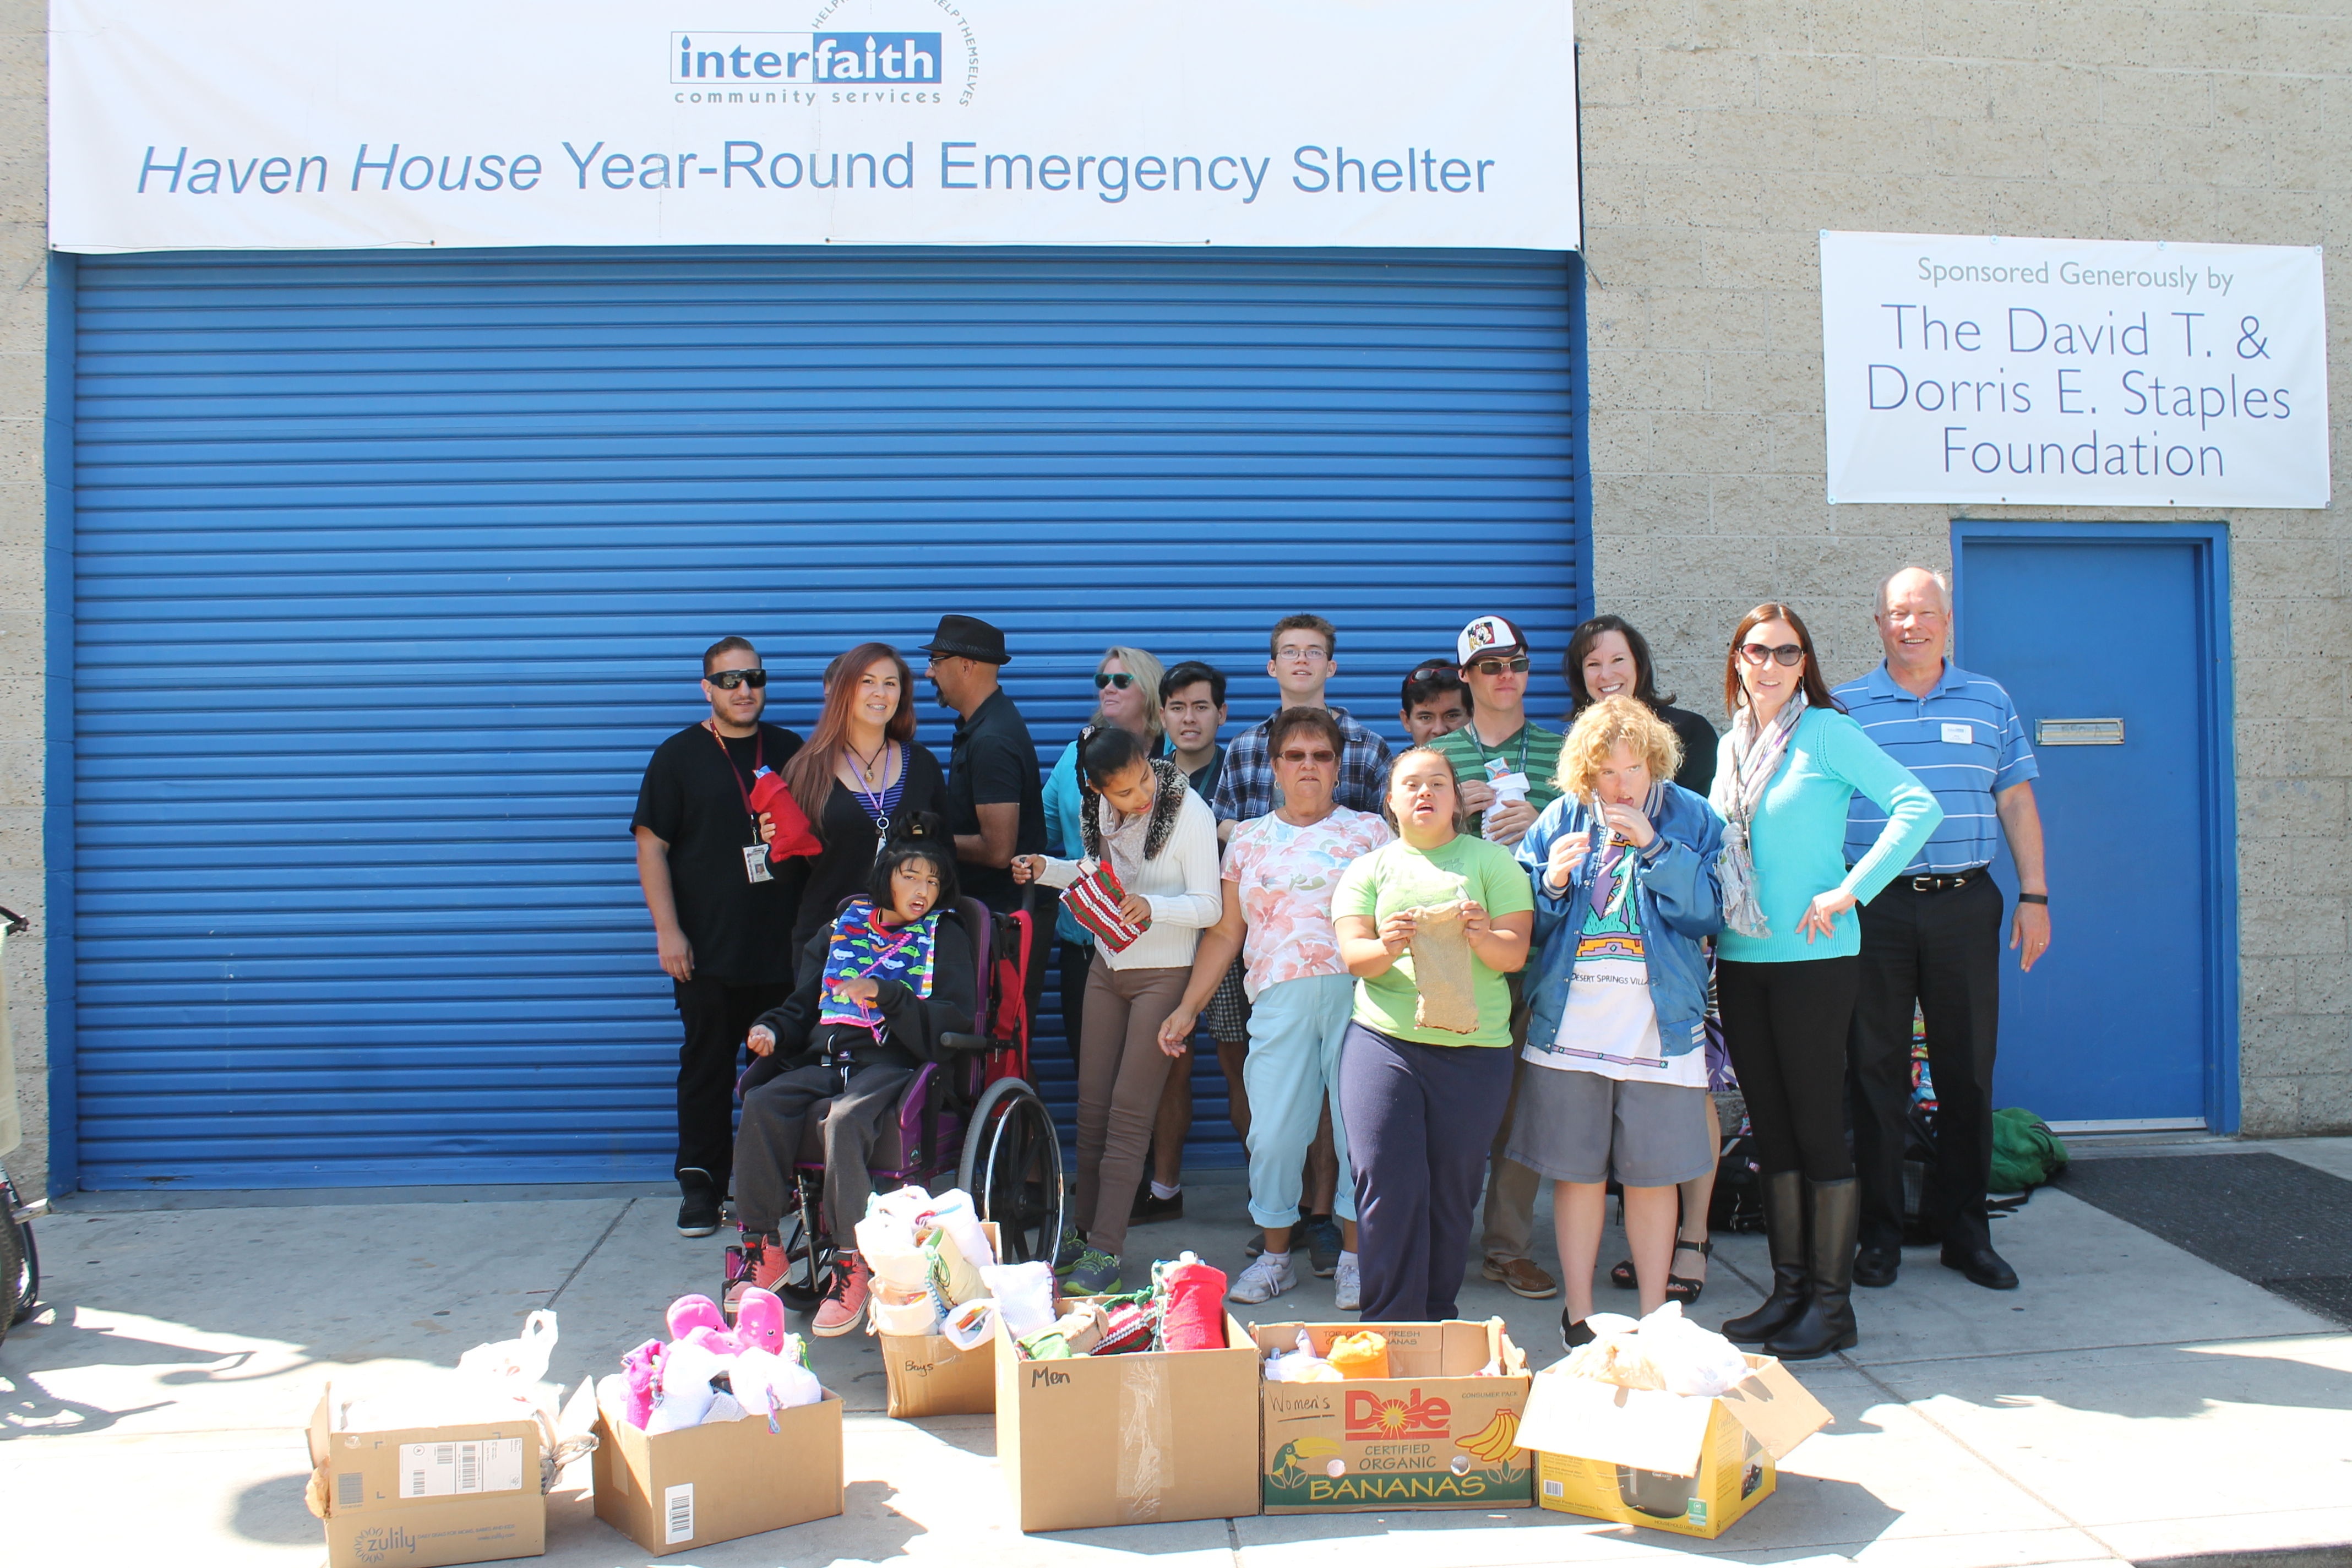 group photo outside haven house year-round emergency shelter